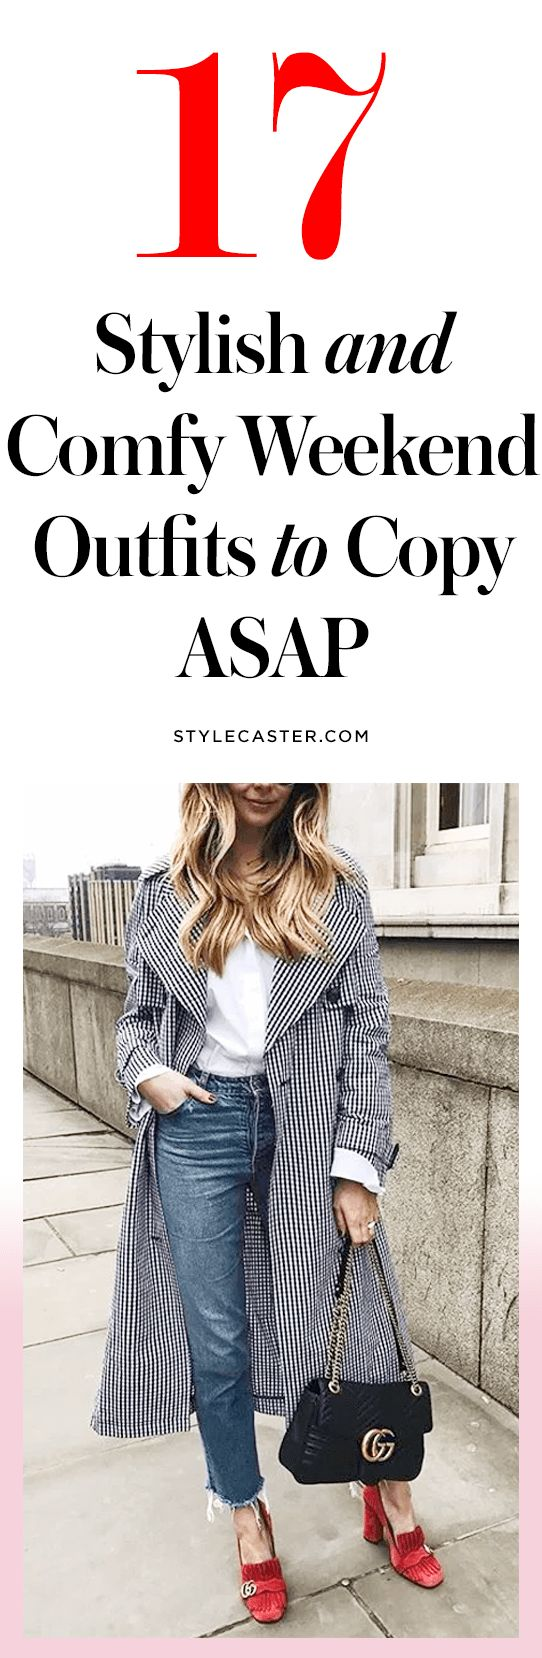 17 Stylish and Comfy Weekend Outfit Ideas to Steal | Super-casual, yet still 'grammable outfits to copy on your laziest days. No crazy heels, no insanely short skirts—just simple outfits for Saturday brunch, coffee dates, and weekend errands! Click through to see all the casual + chic looks!